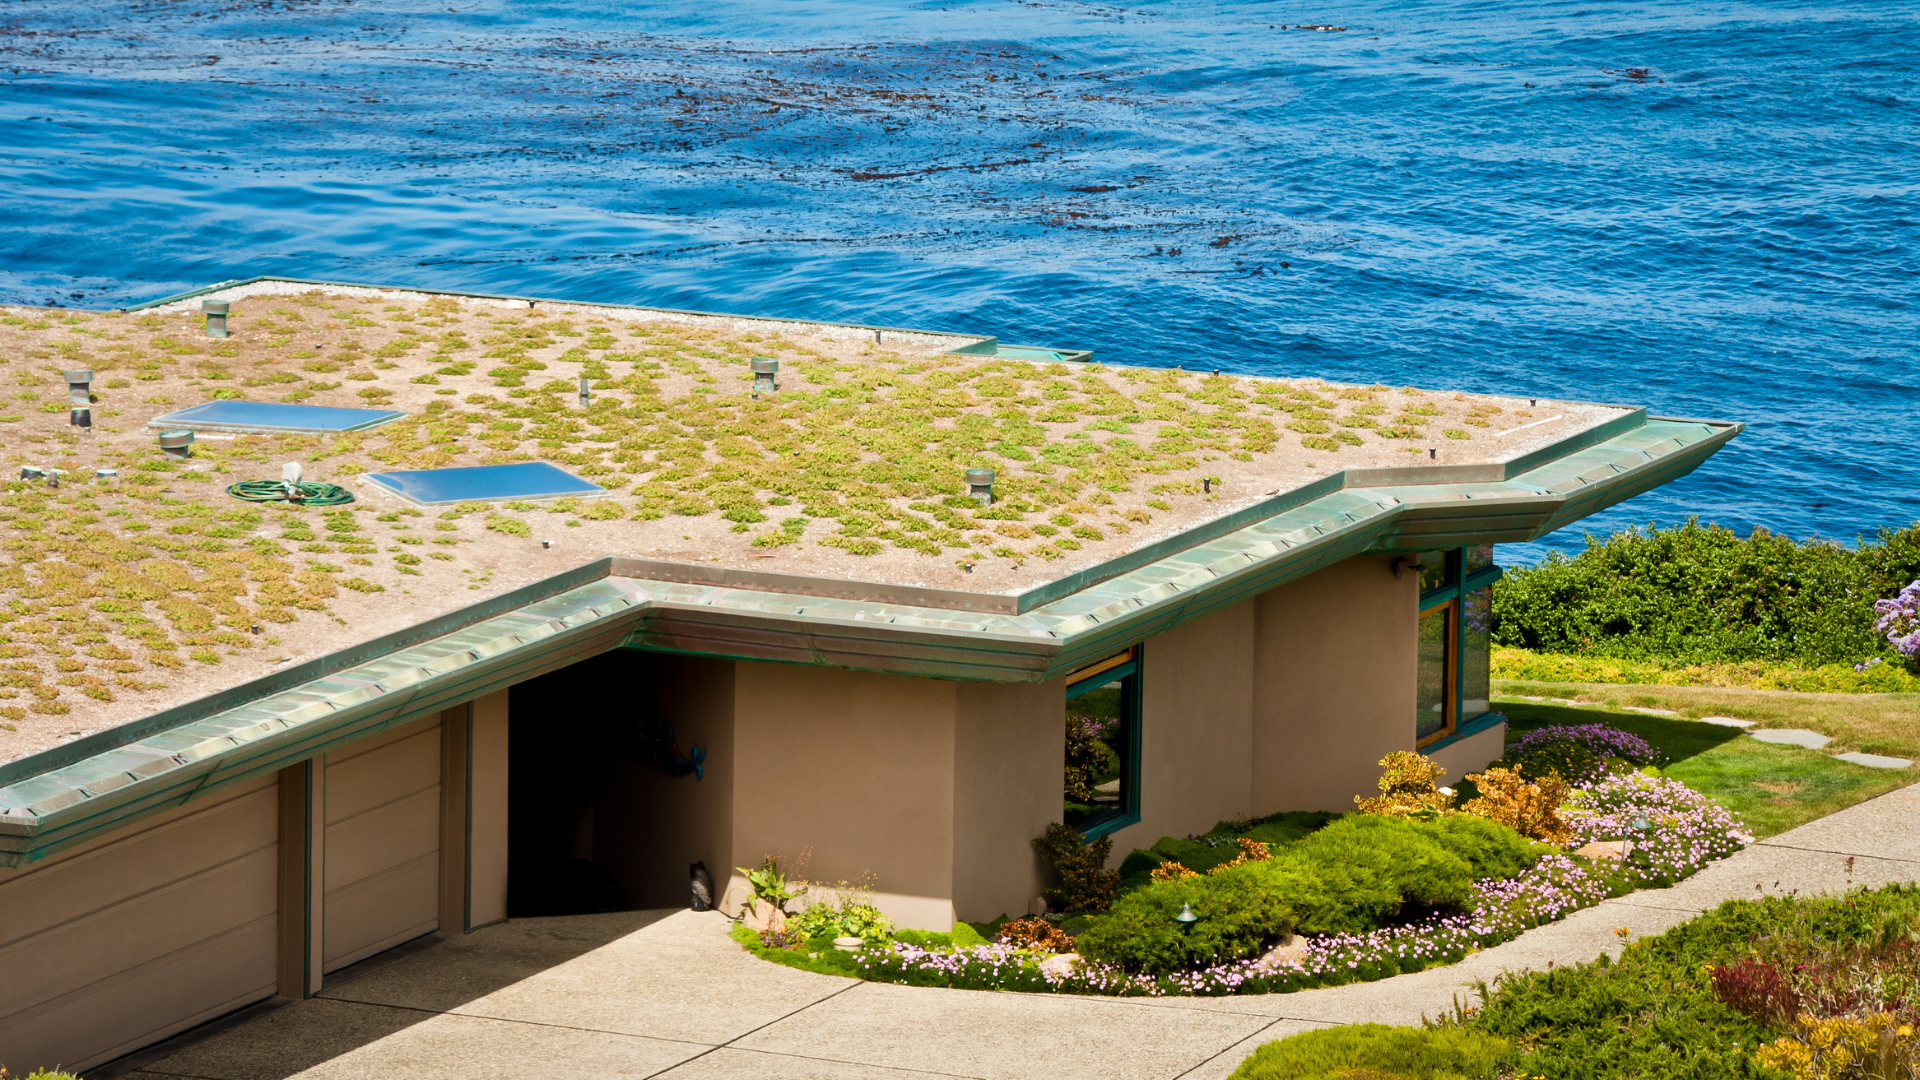 Do You Need Custom Media for a Green Roof? | Green roof media is important, but you might not have to get it custom made.